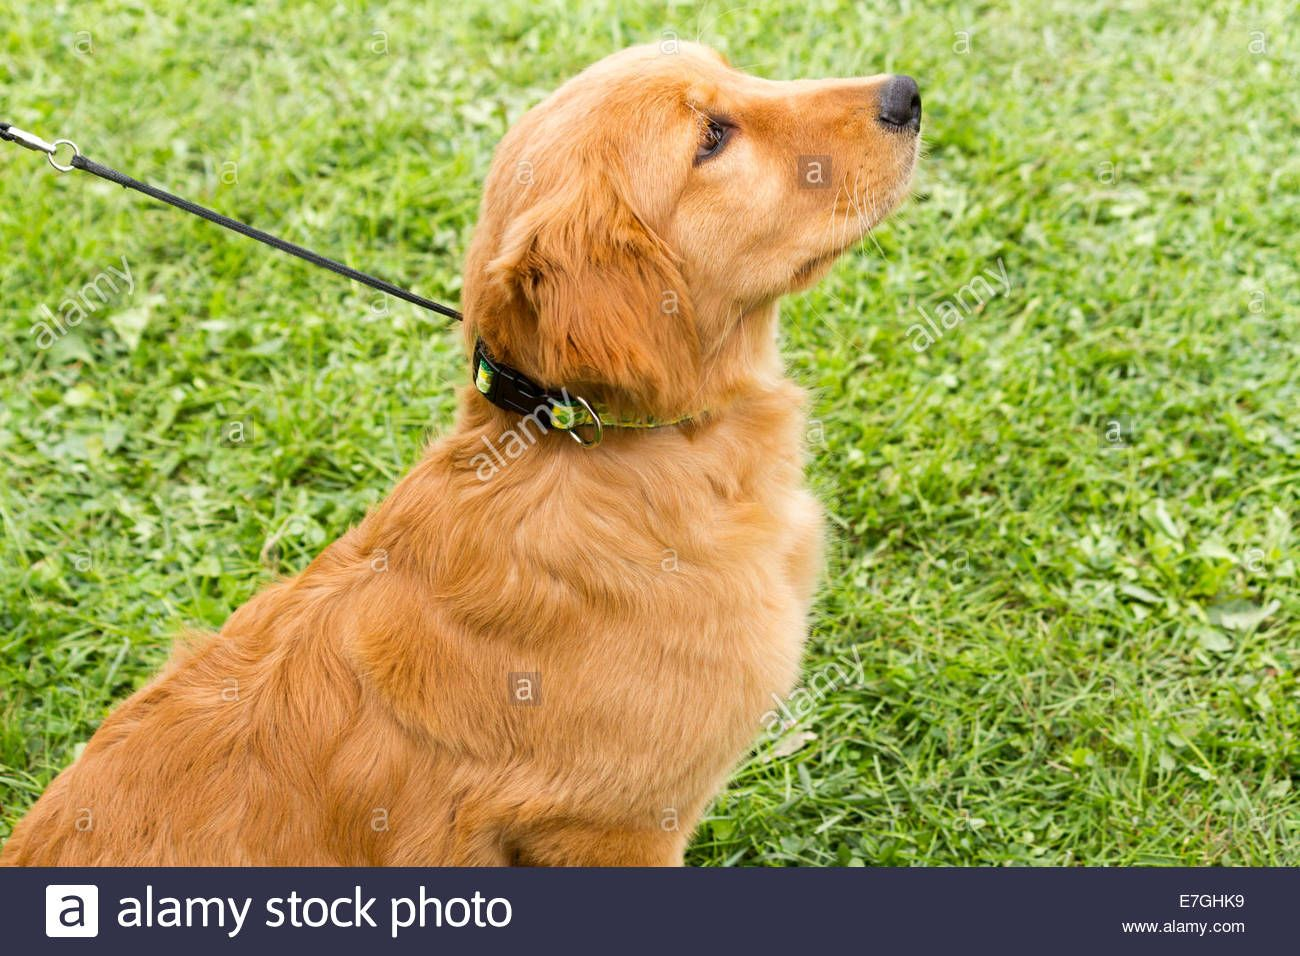 How to train a golden retriever puppy this breed is